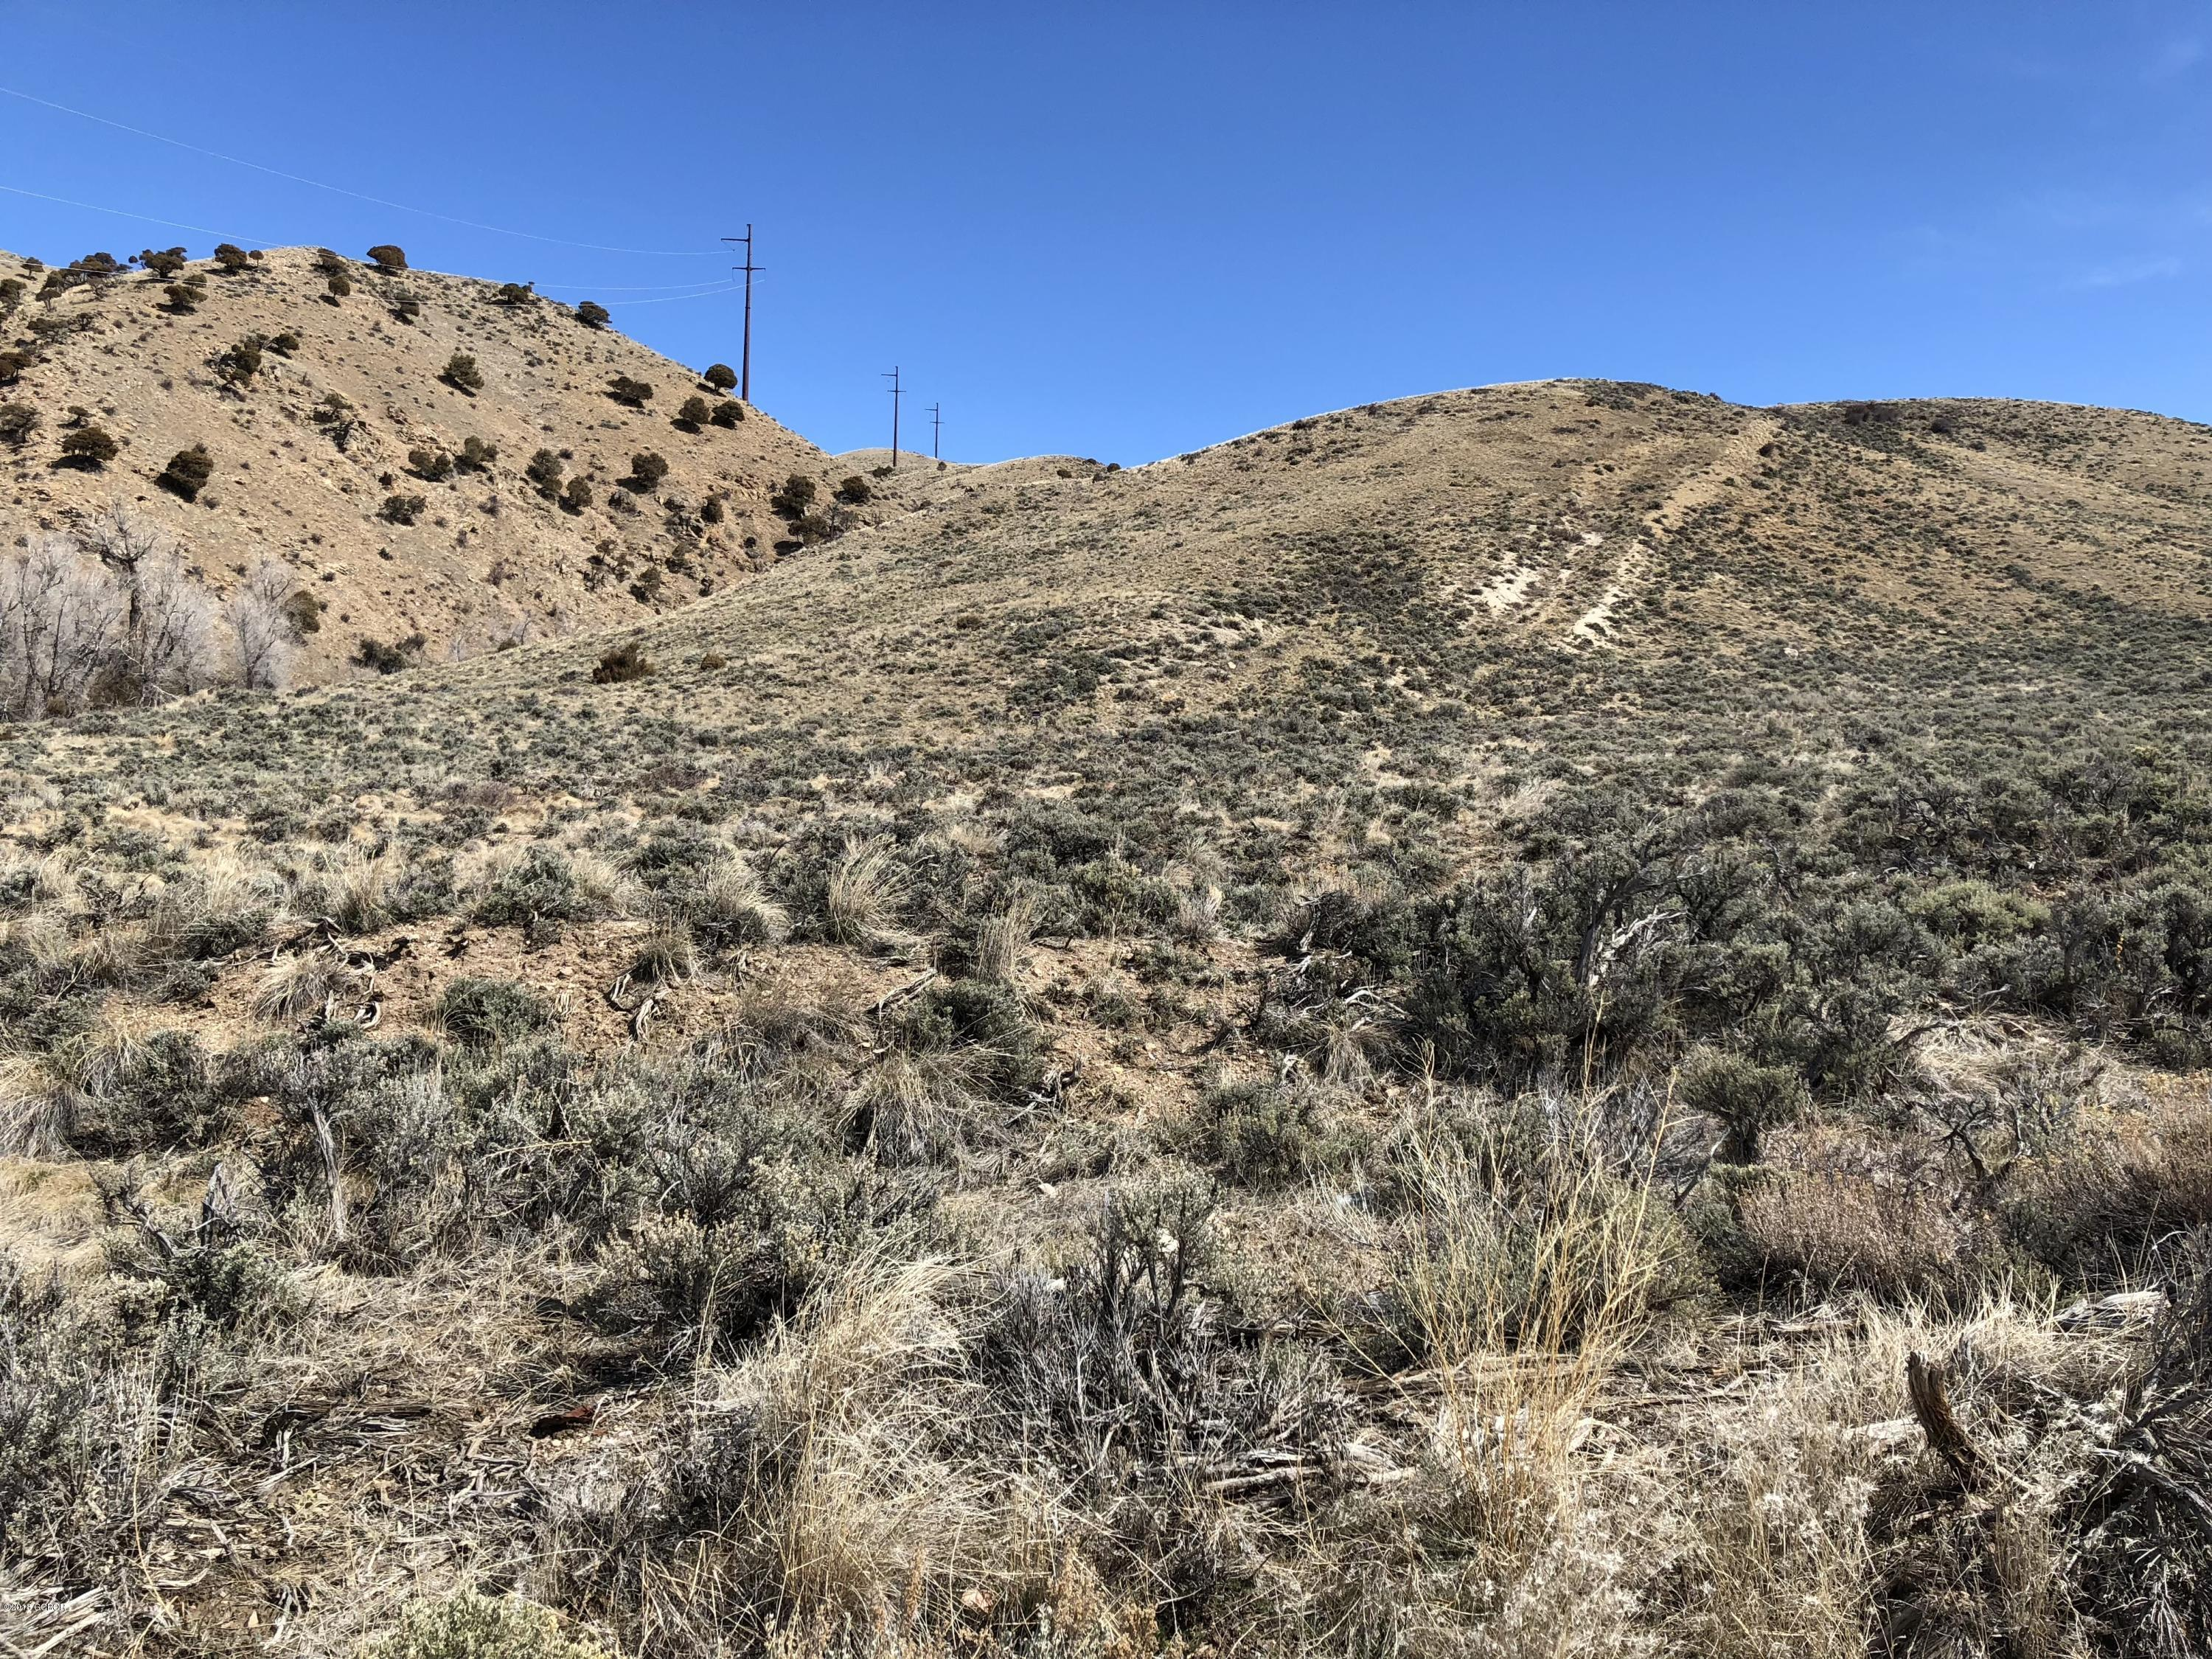 MLS# 18-362 - 1 - 175-275  Gcr 20, Parshall, CO 80468